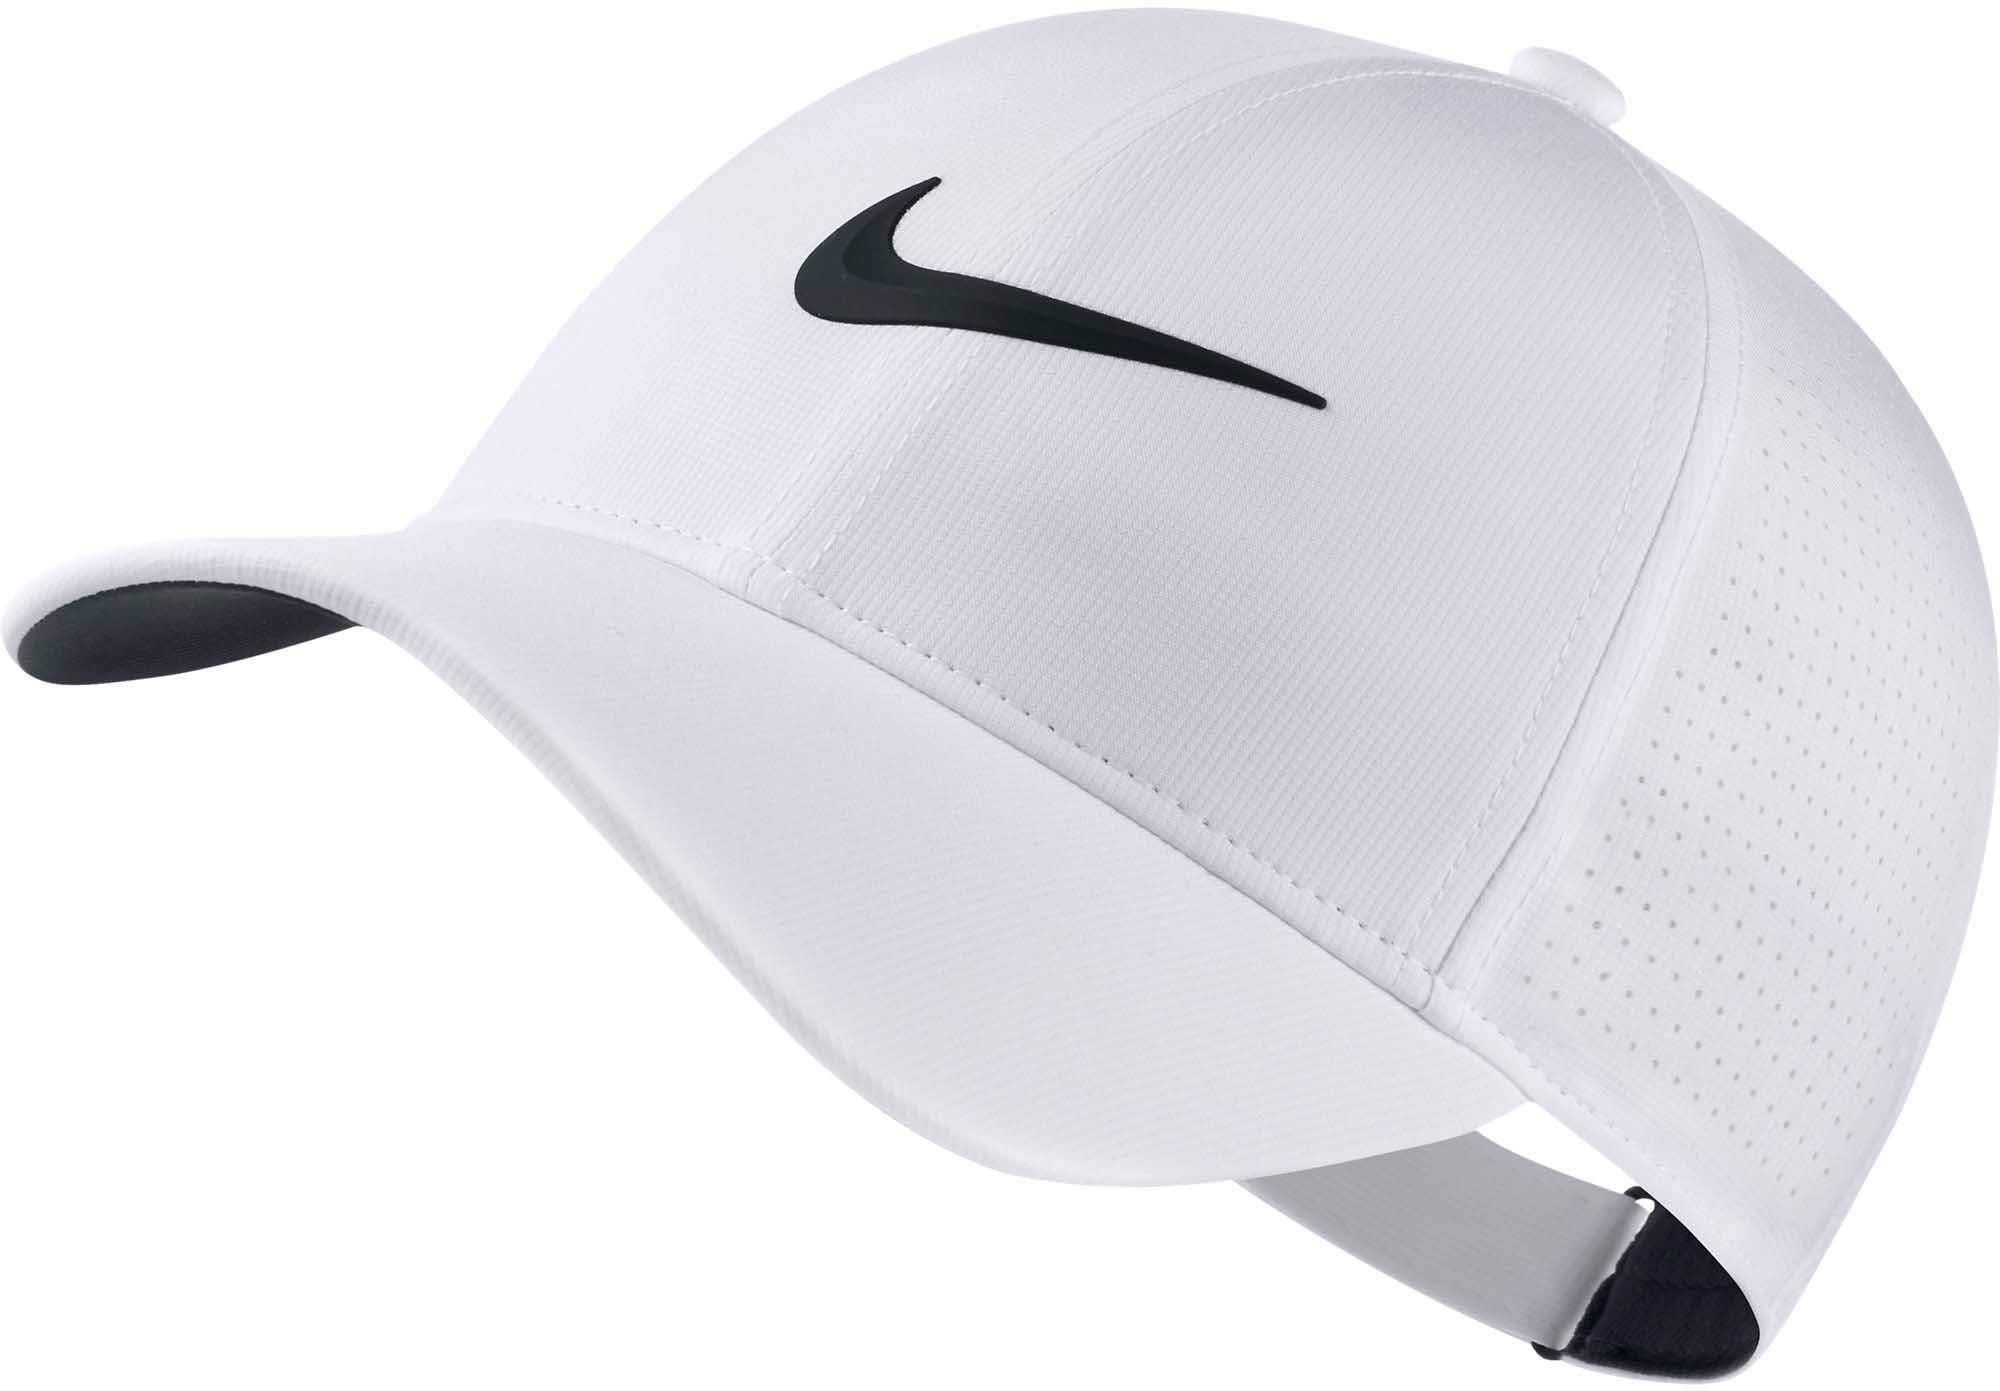 1d04a9b3f NIKE Women's AeroBill Legacy 91 Perforated Cap, White/Anthracite/Black, One  Size